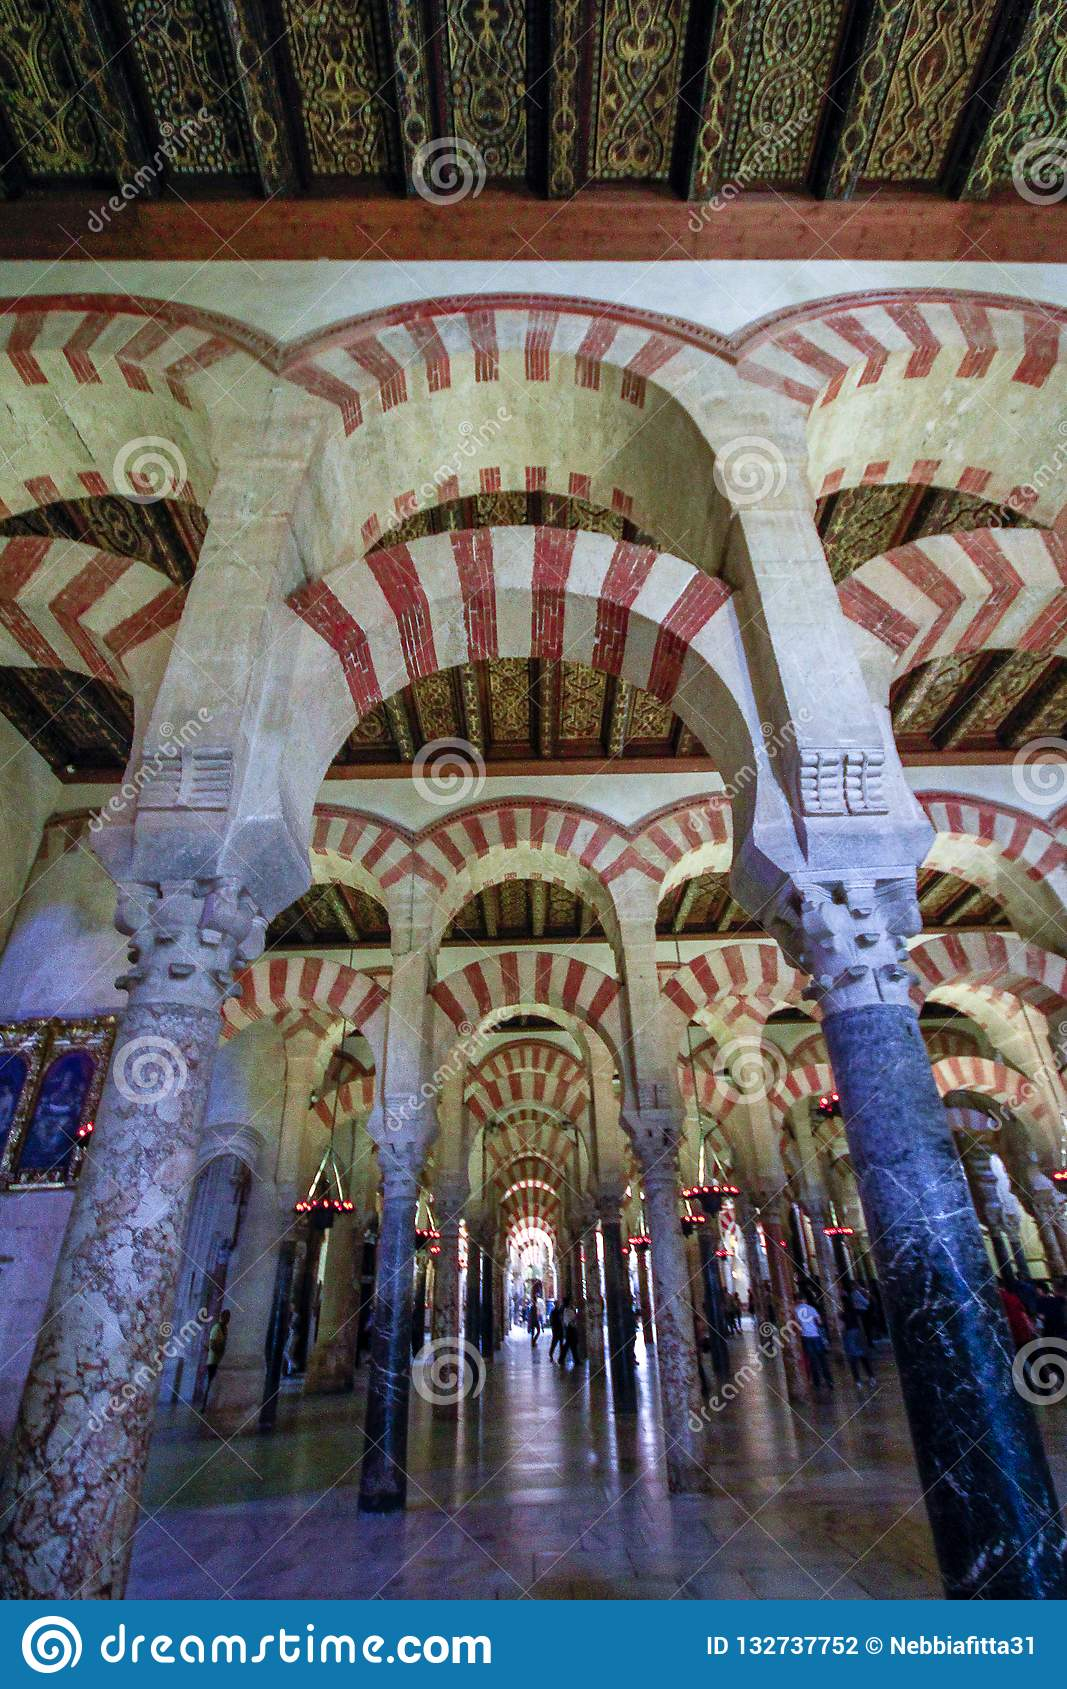 The Forrest Of Pillars In The Great Mosque In Cordoba Spain Stock Photo Image Of Andalucia Great 132737752